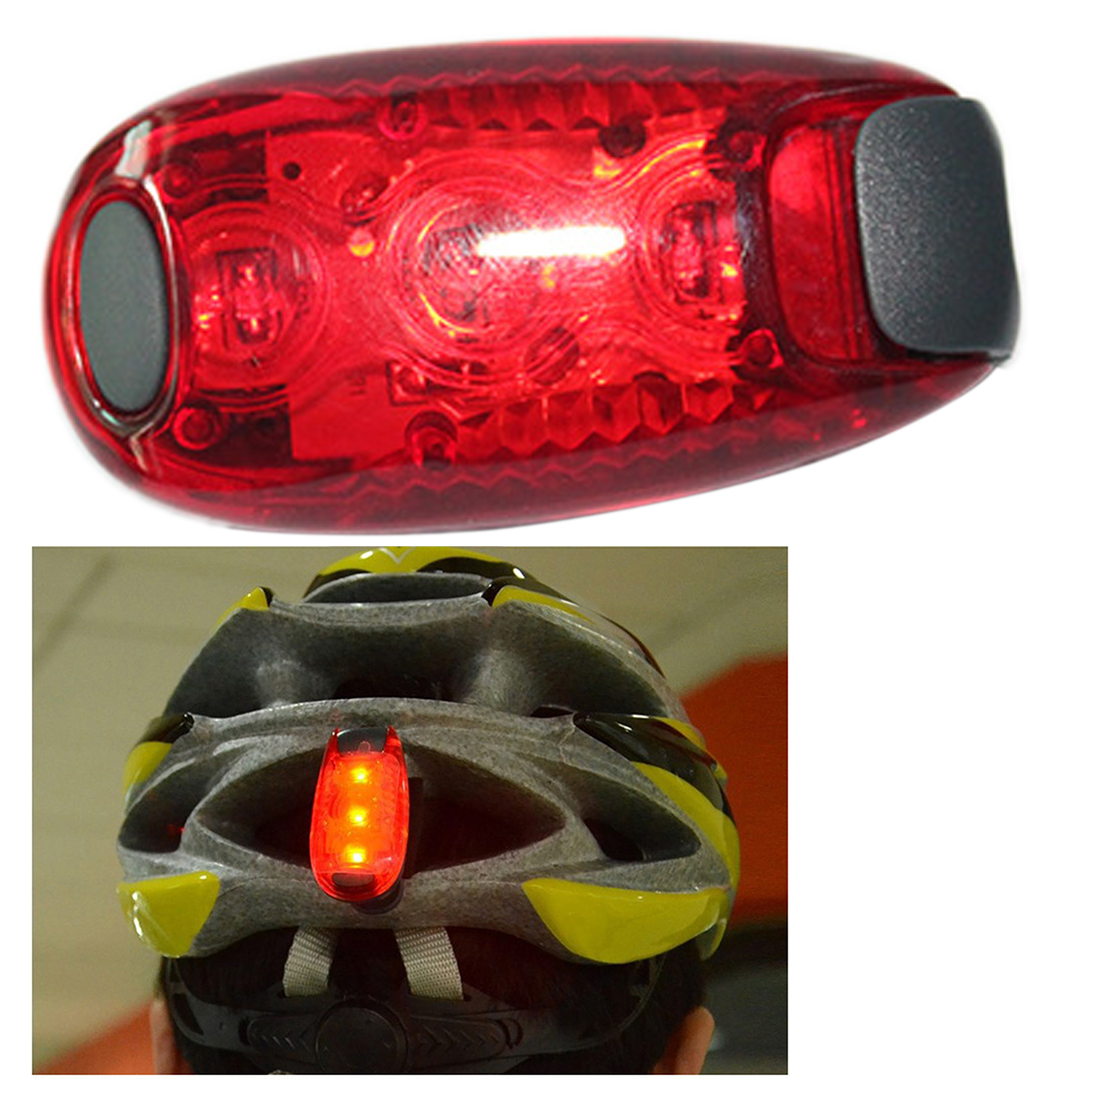 Bike Cycling Lights Super Bright 3 LED Bike Light Taillight Safety Warning Luz Bicicleta Mountaineering Backpack Helmet Runn